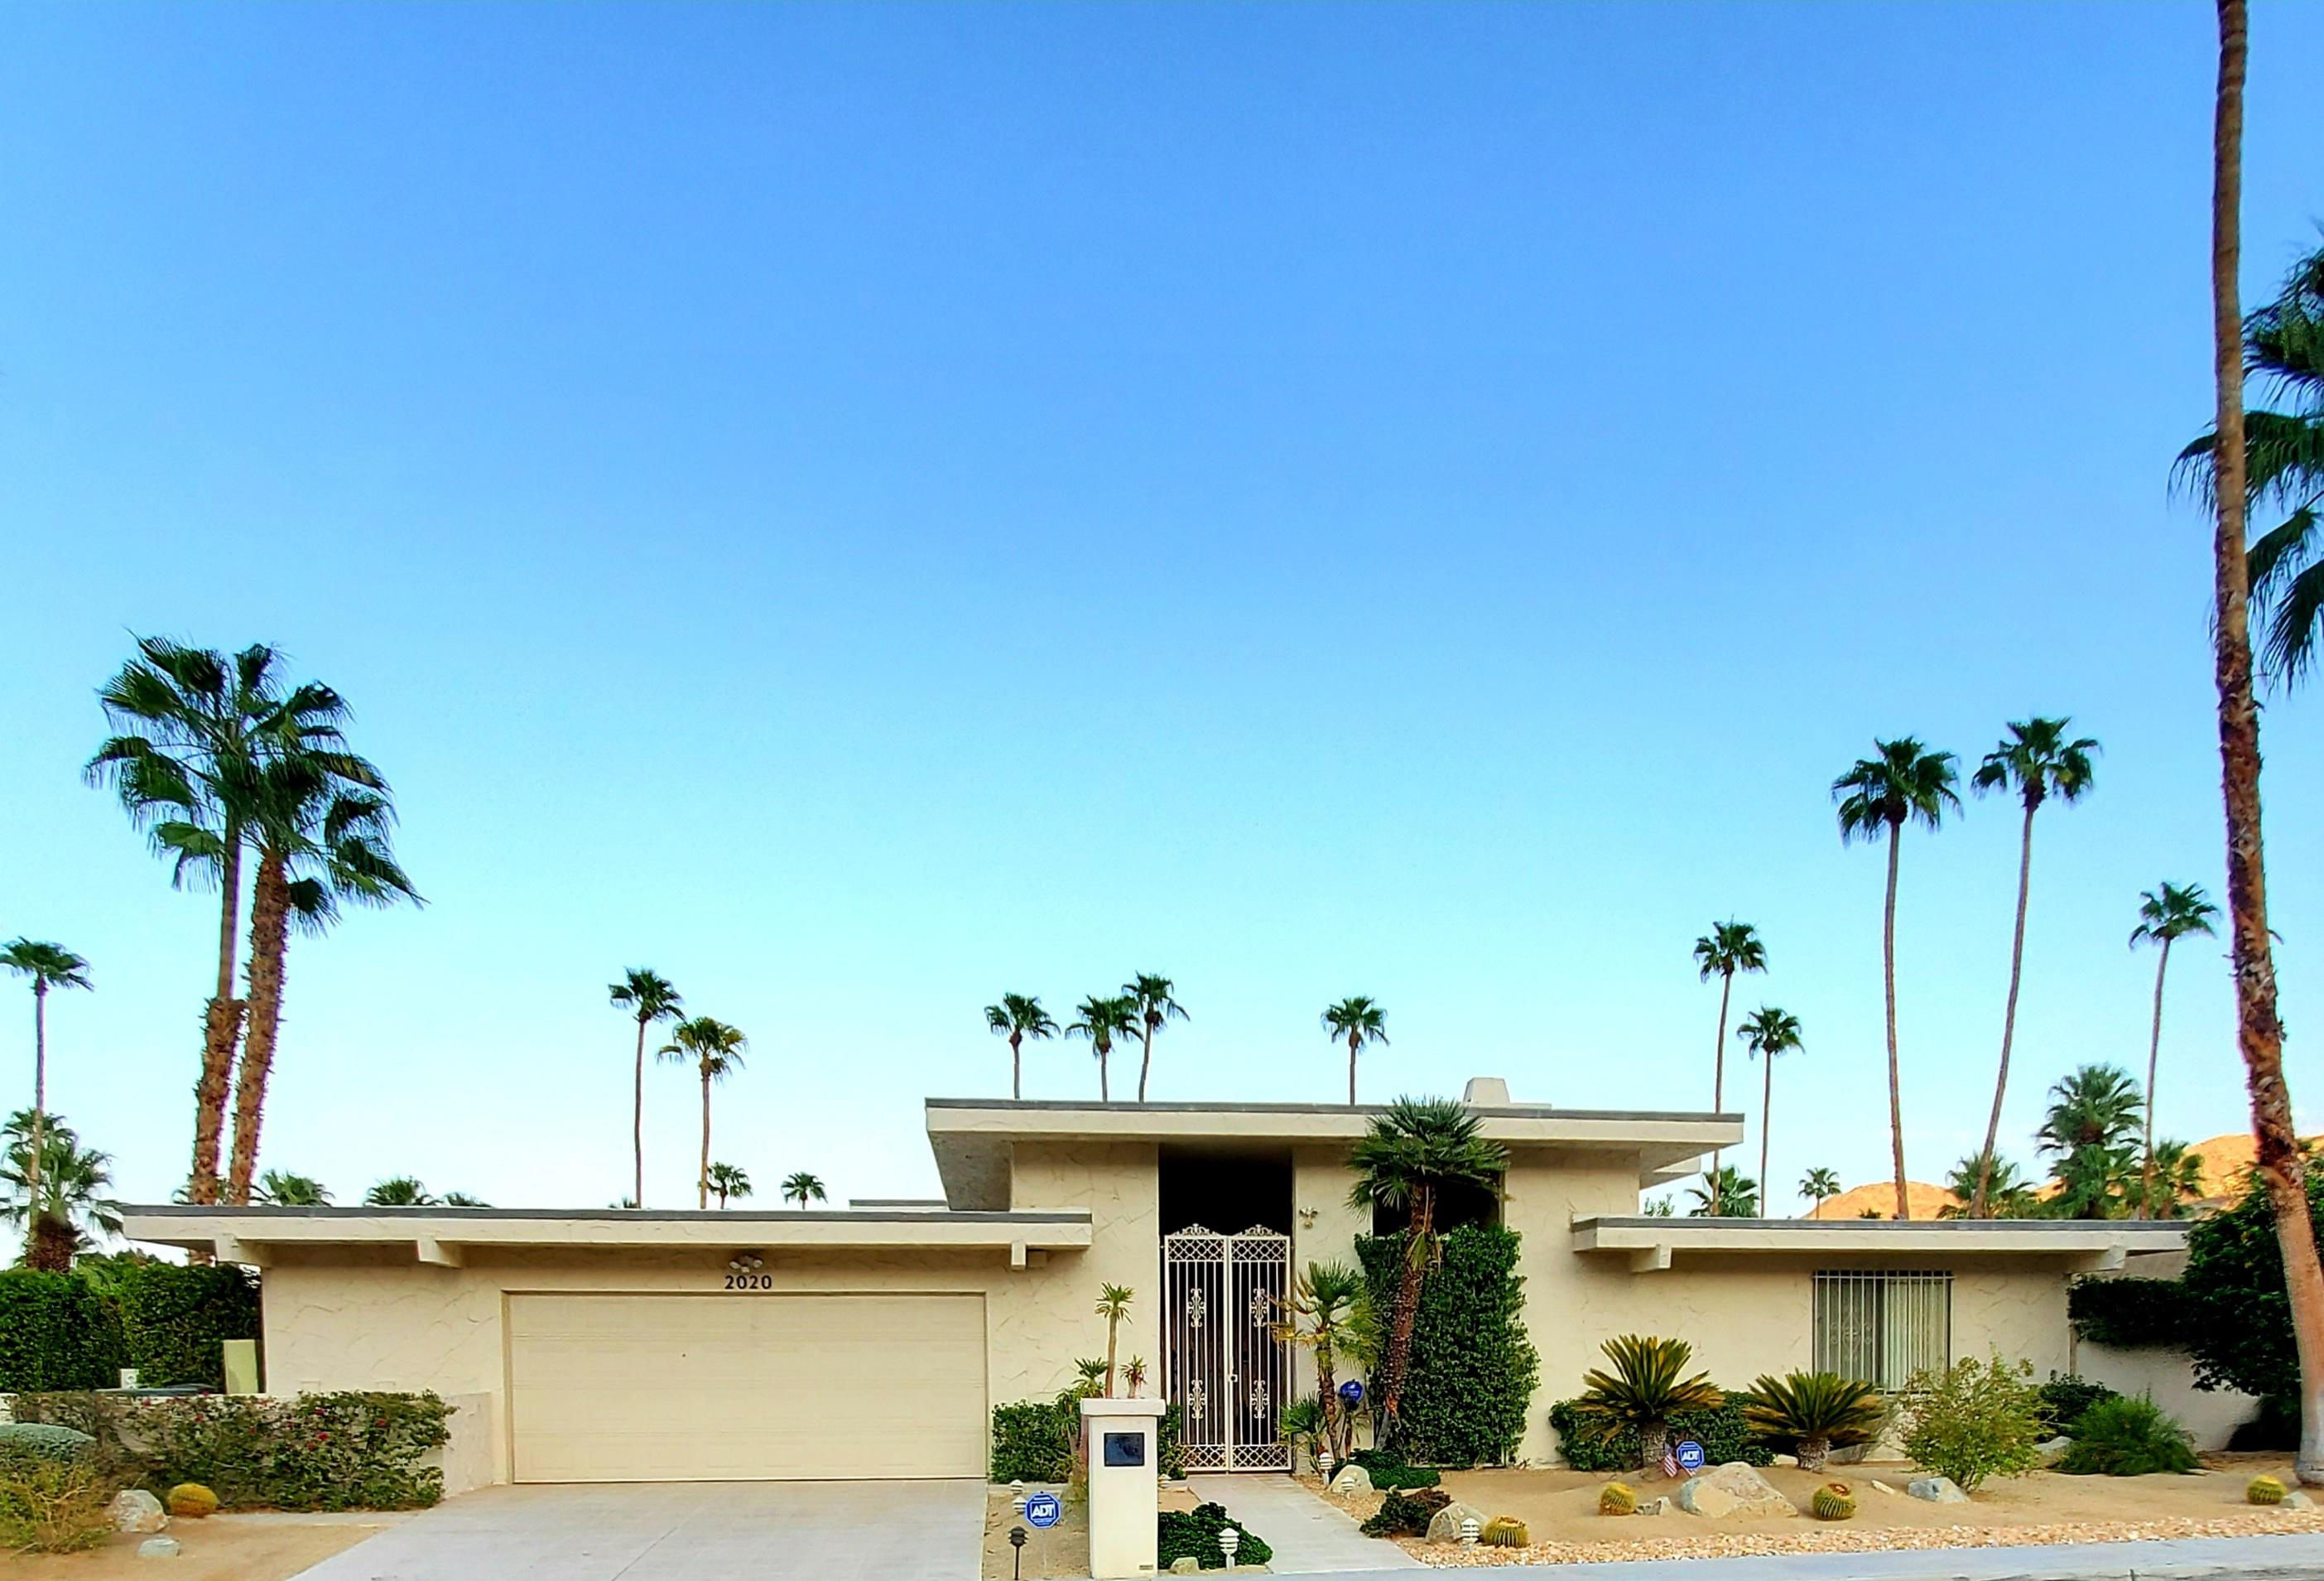 Photo of 2020 Chico Drive, Palm Springs, CA 92264